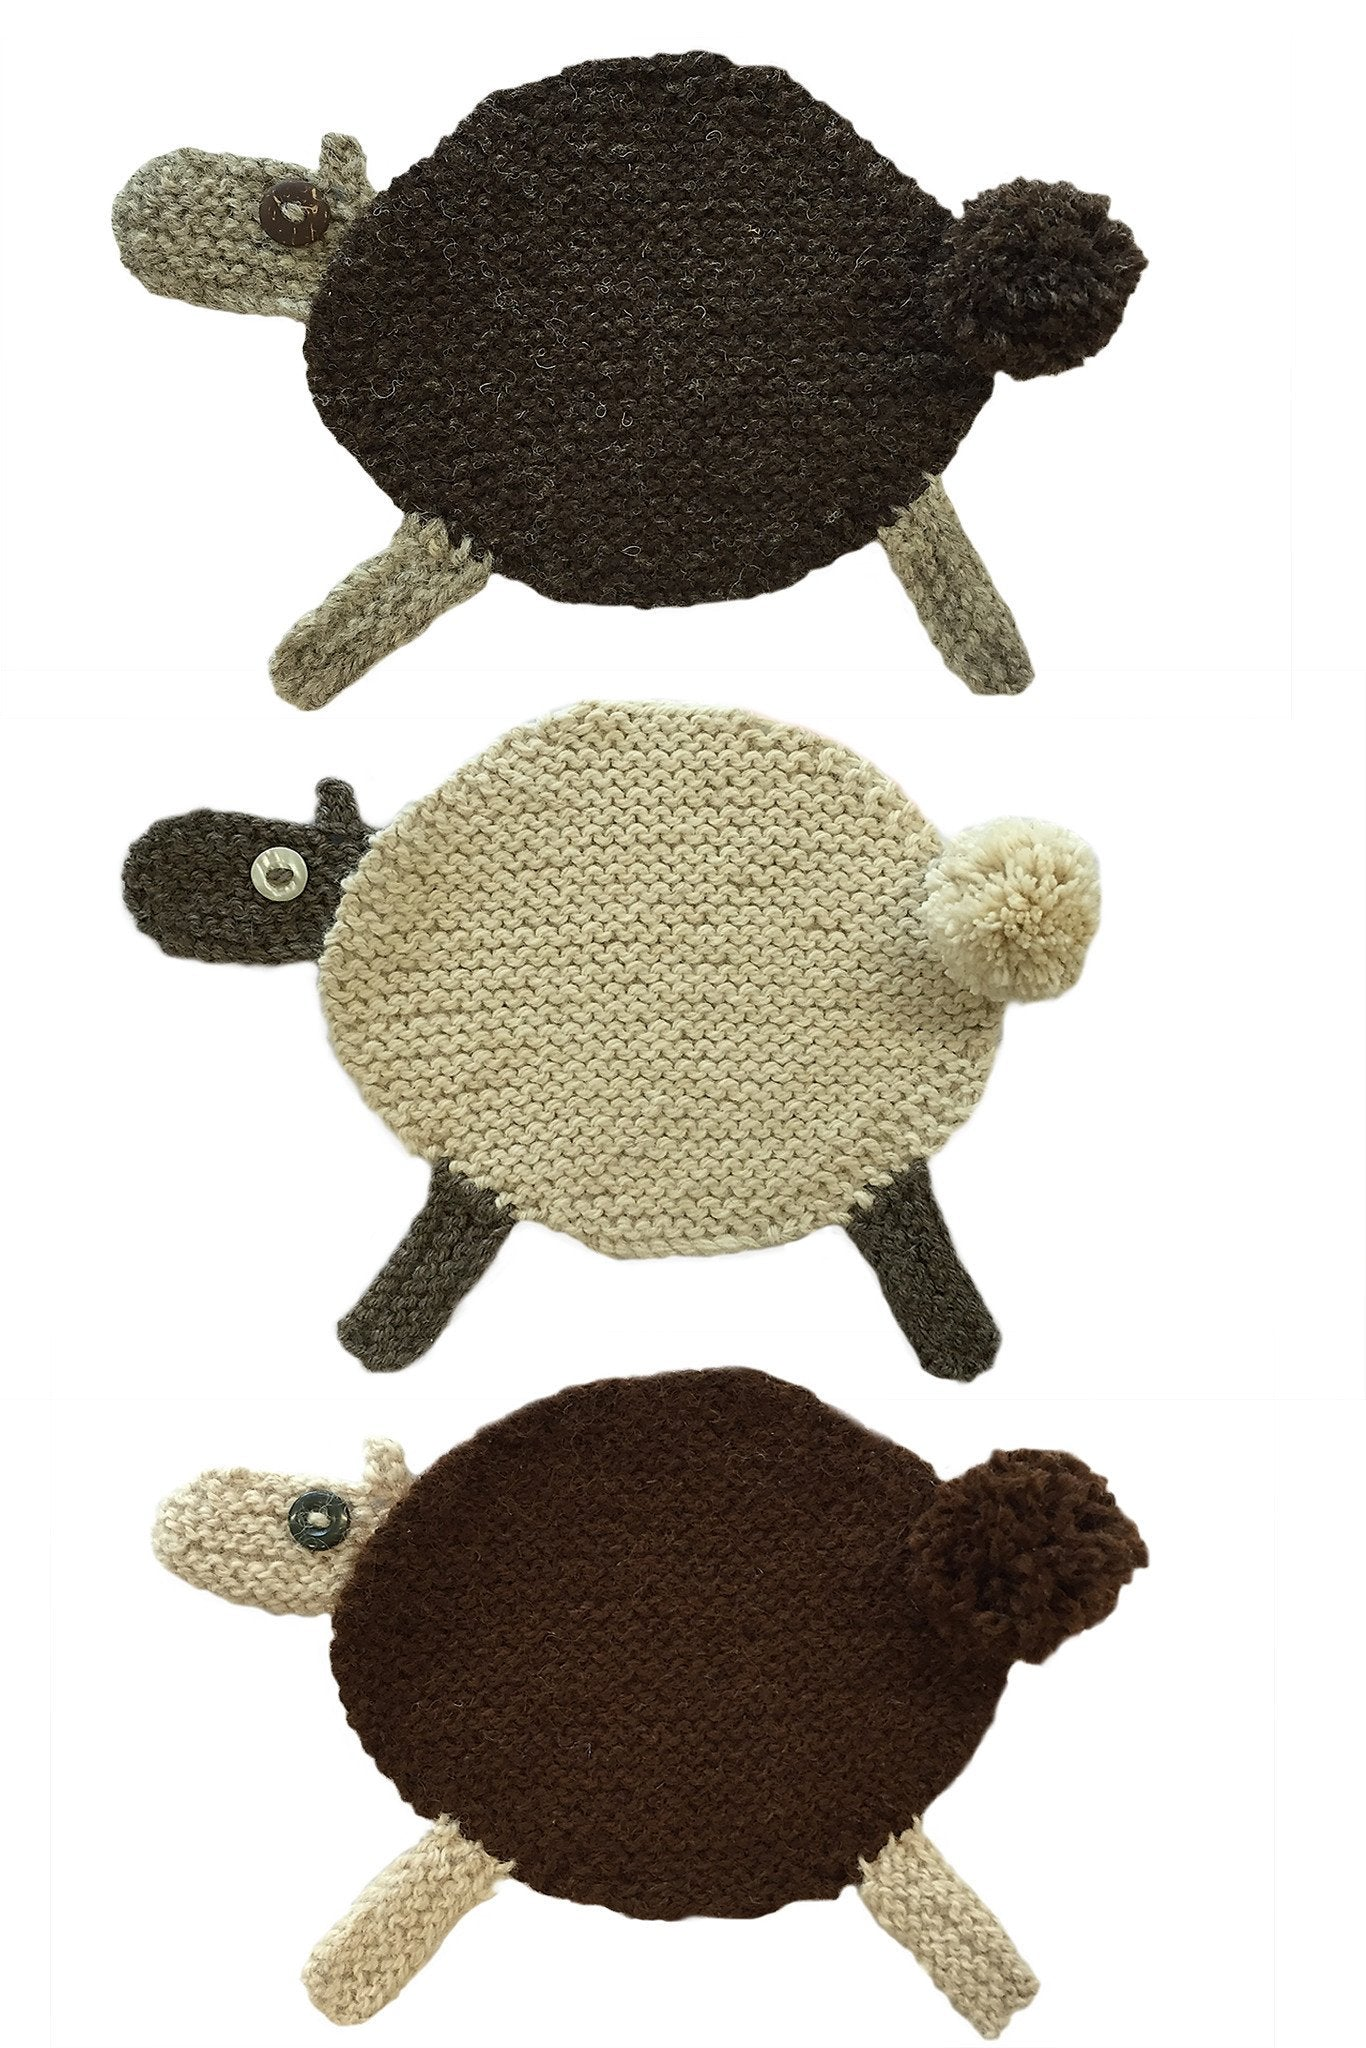 Sheep coaster knitting pattern the knitting network sheep coaster knitting pattern bankloansurffo Gallery